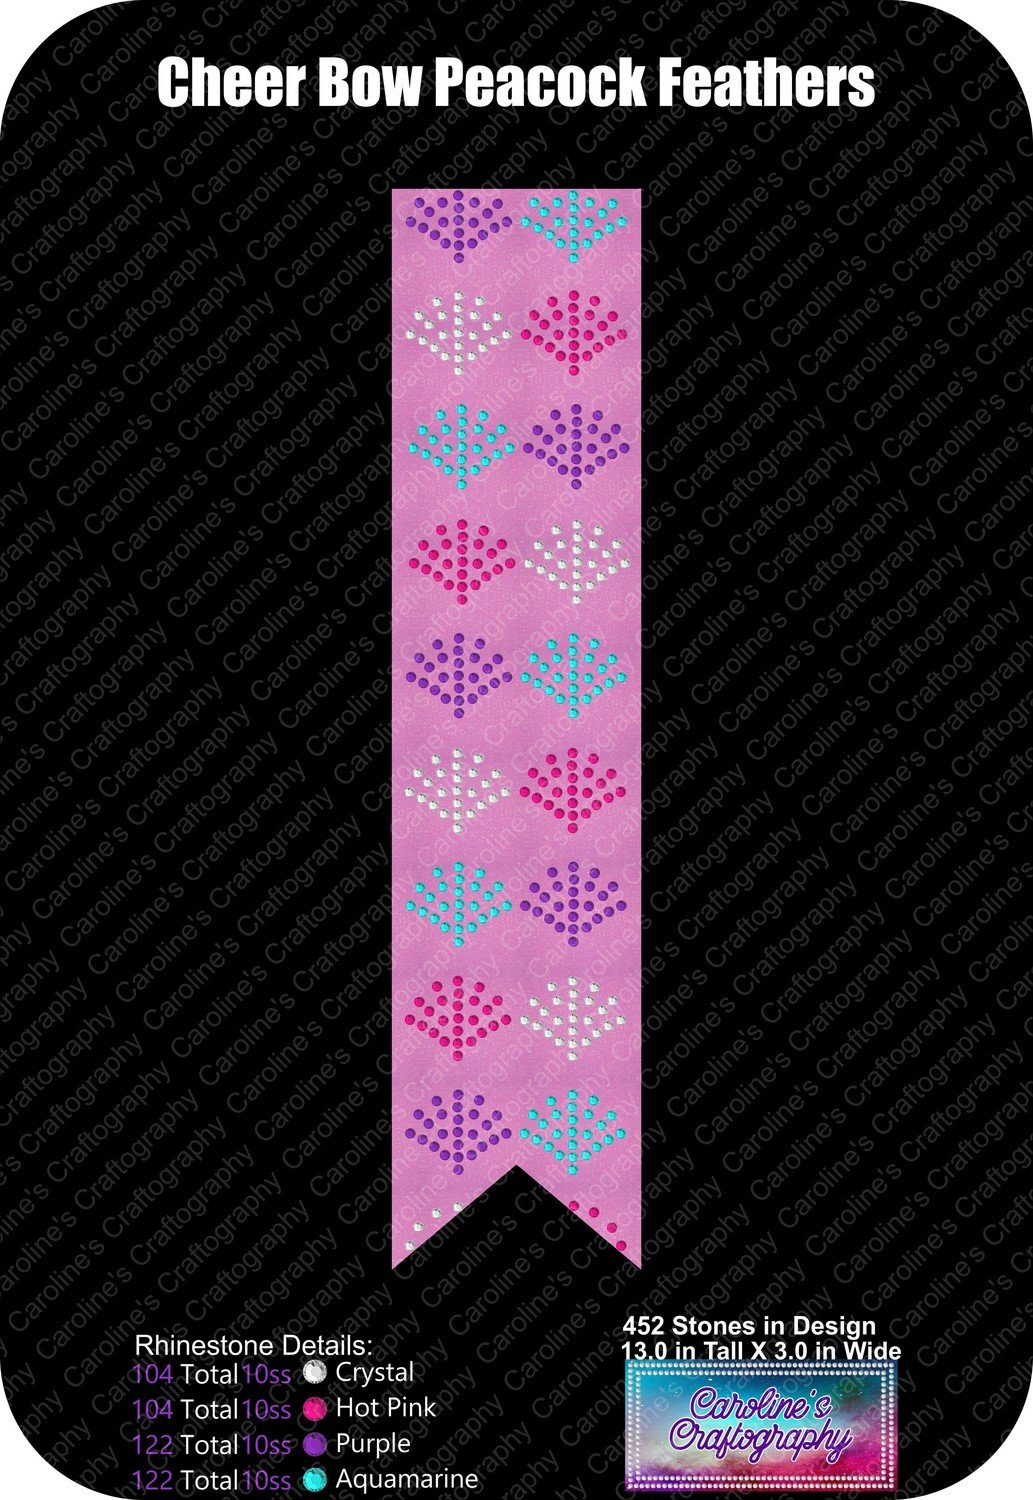 Peacock Feather Cheer Bow 3 inch